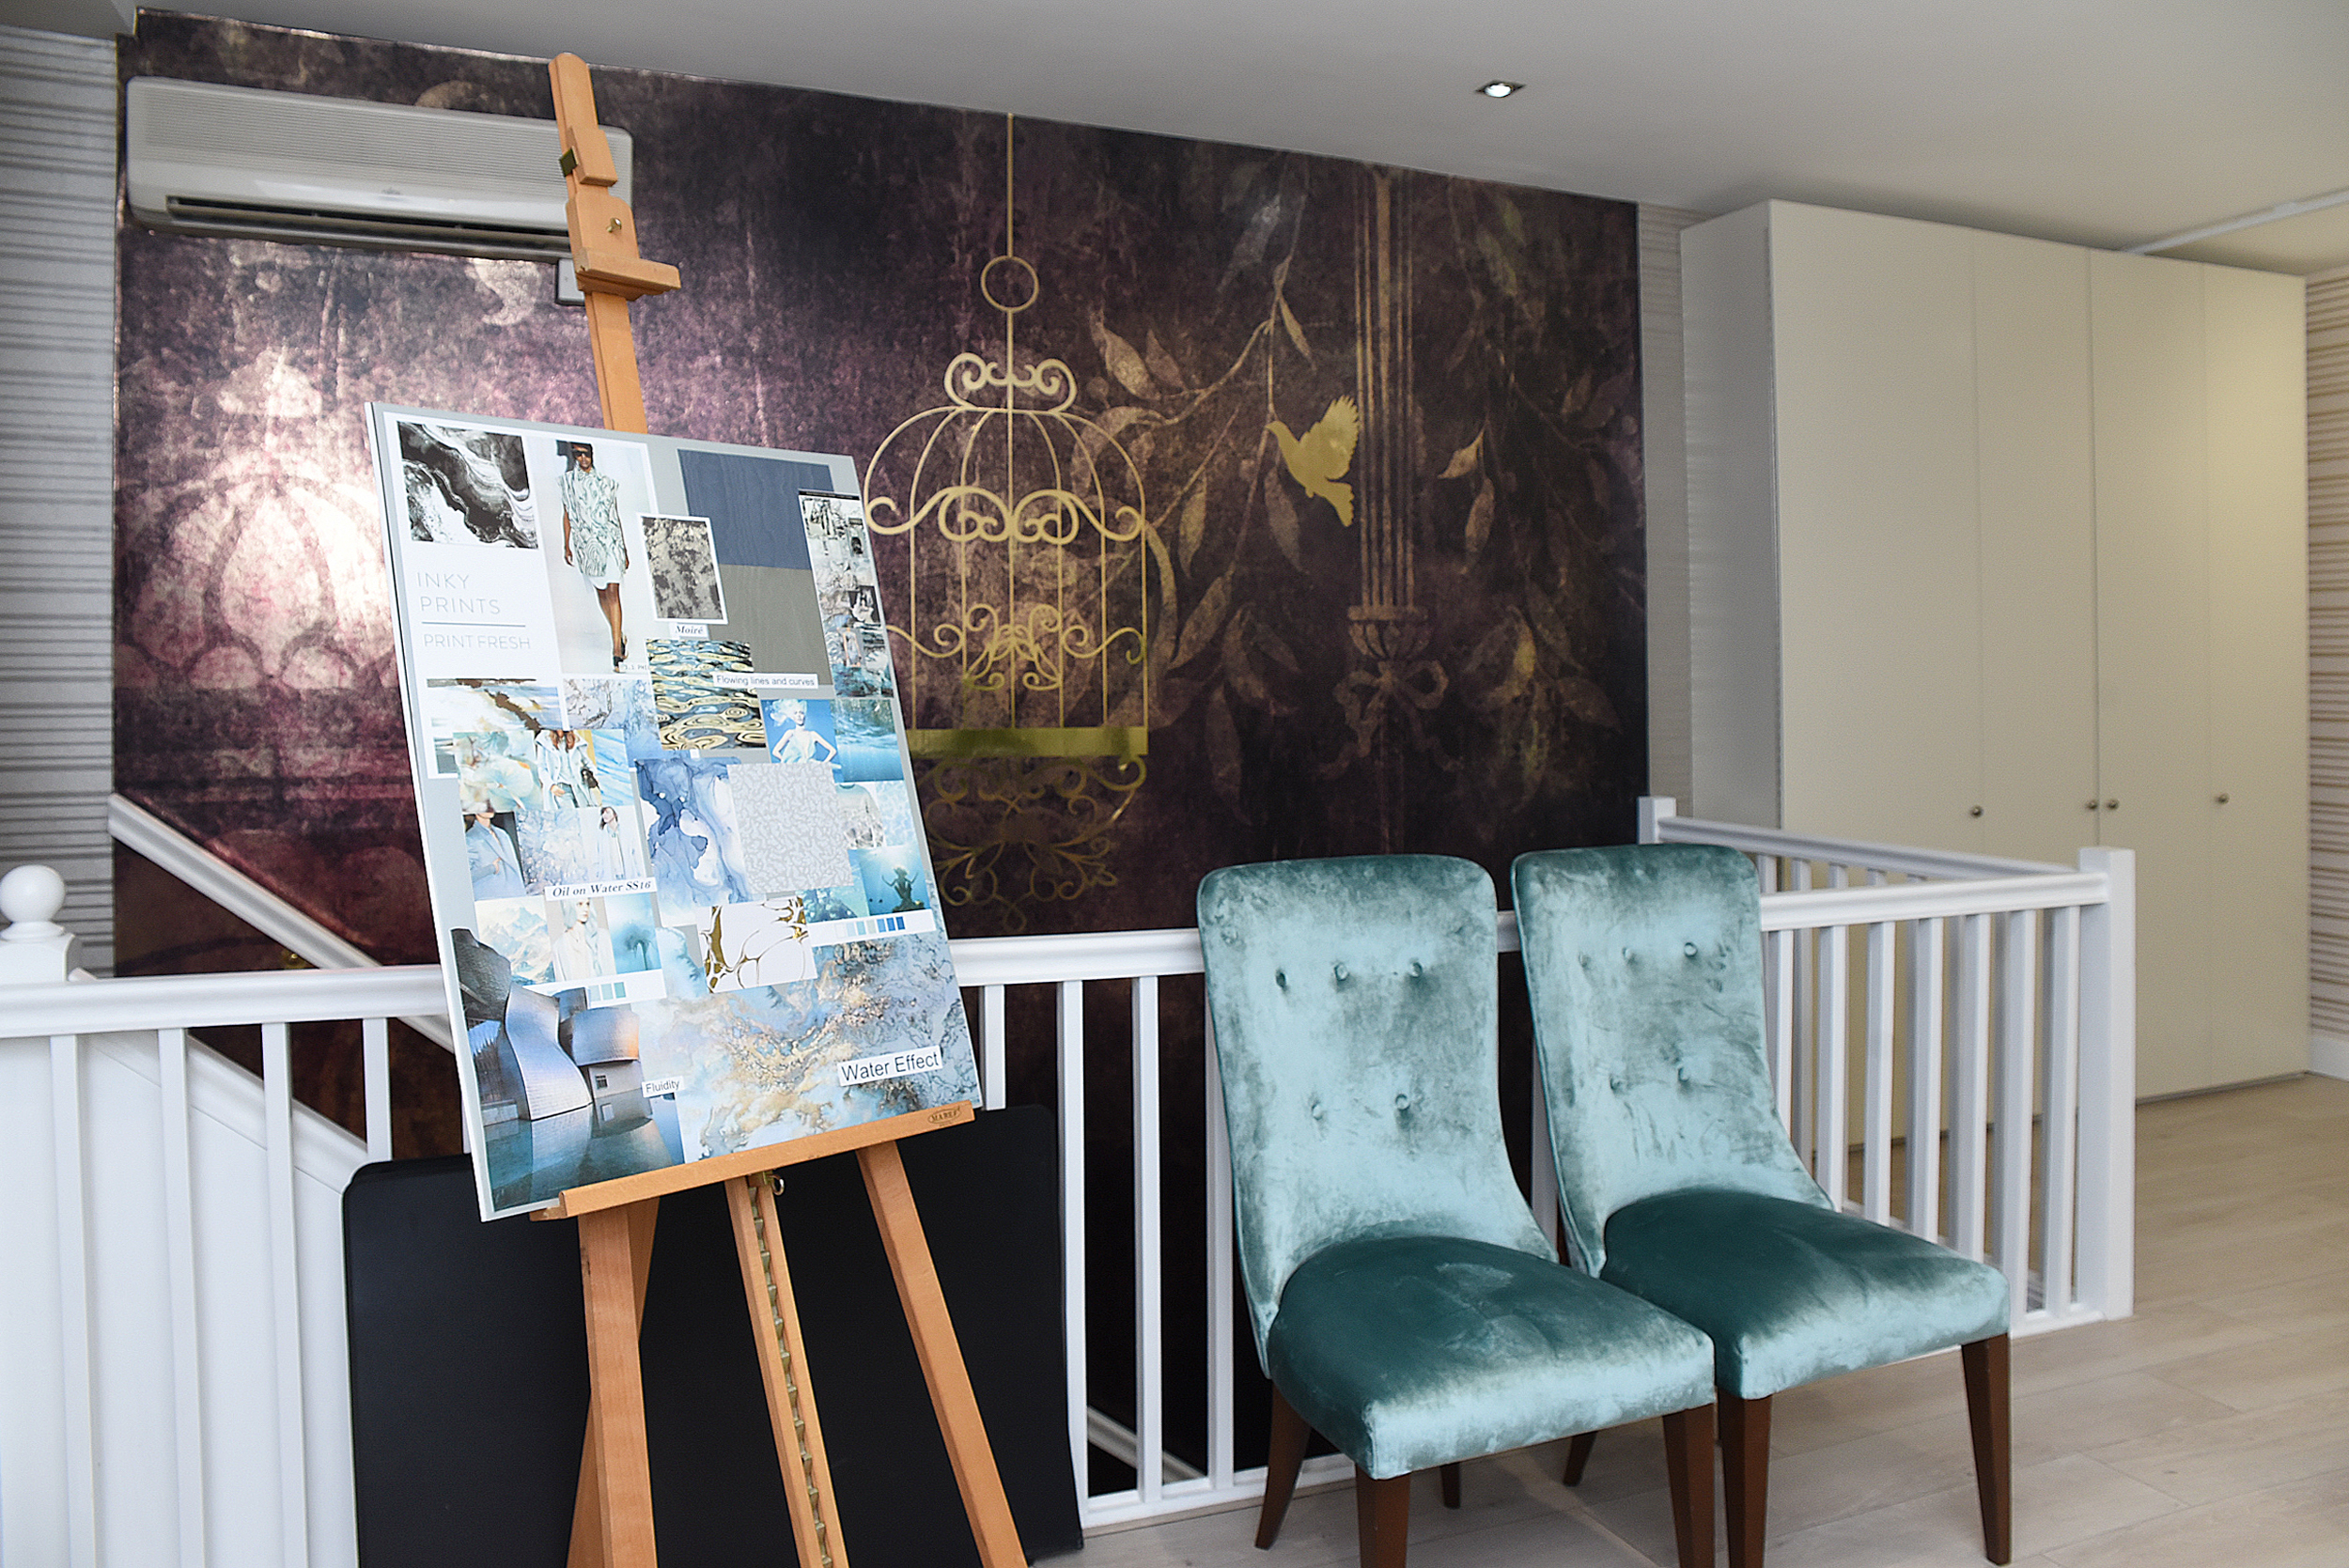 Muraspec Digital - Bespoke Wallcovering